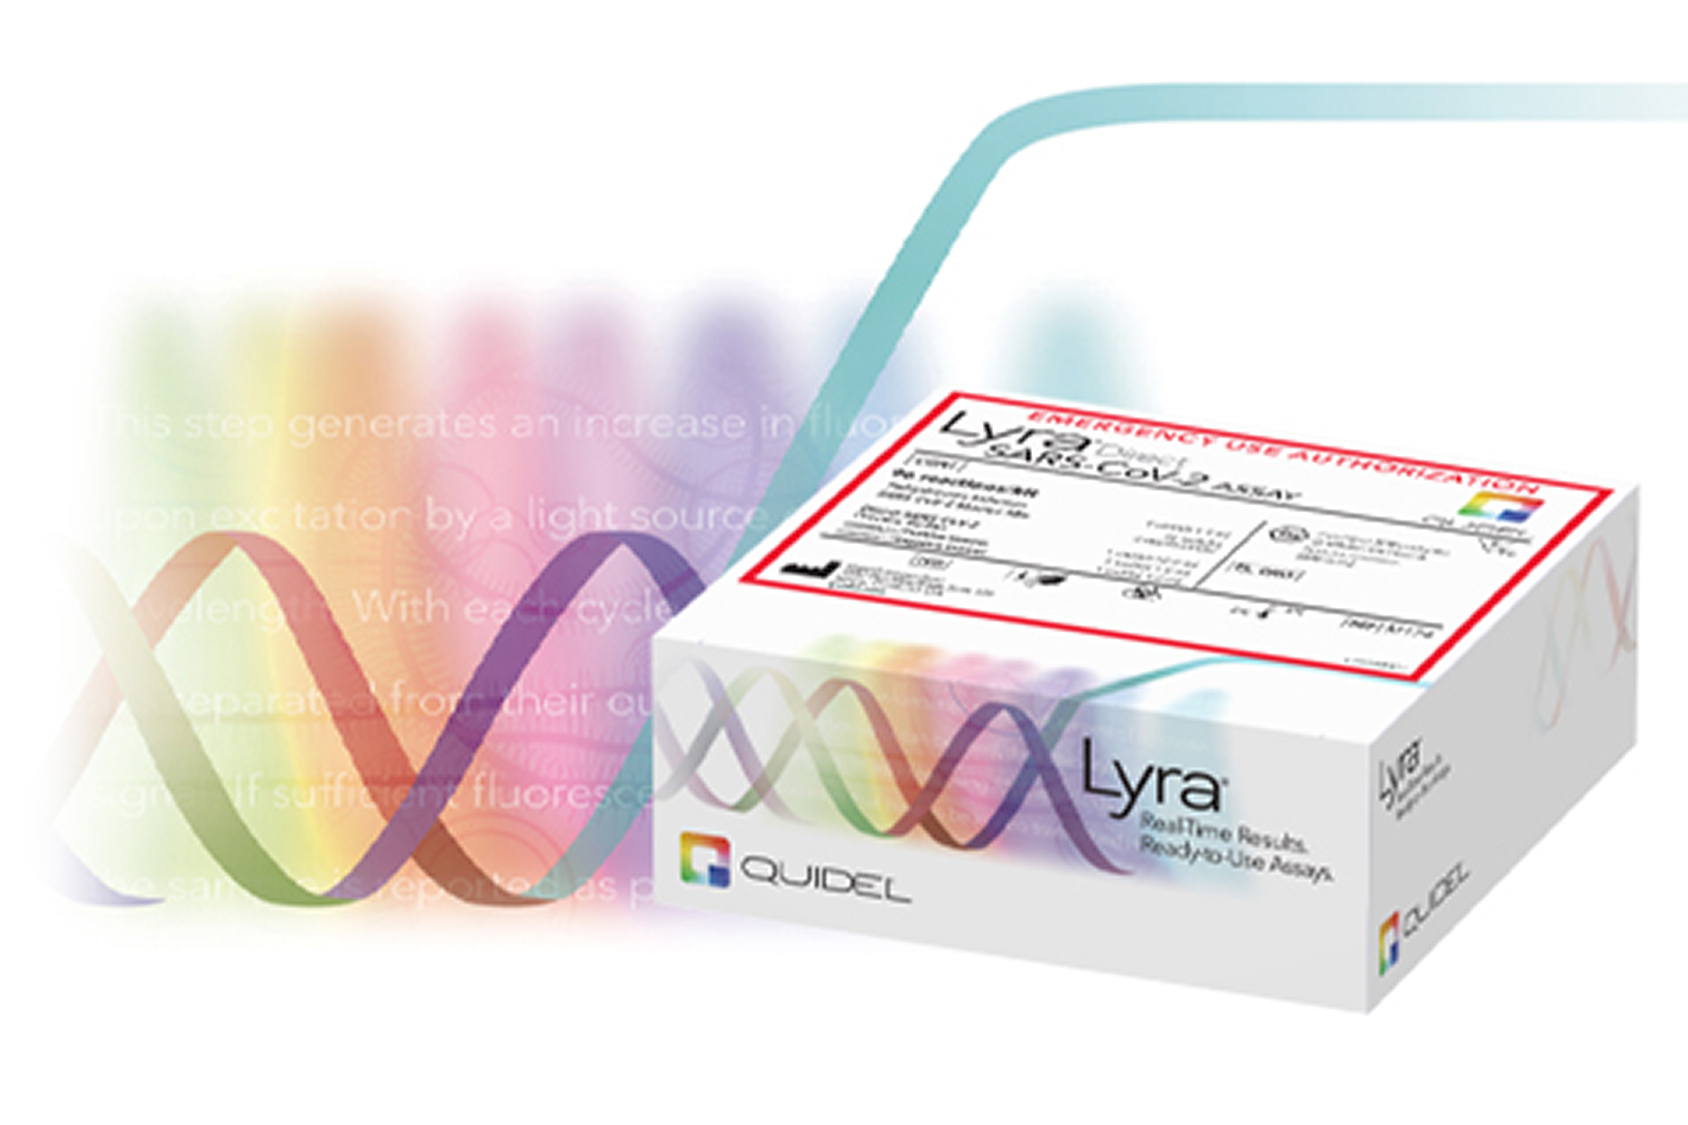 Lyra Direct SARS-CoV-2 AssayProduct Page | Health Care Professional Fact Sheet | Patient Fact Sheet